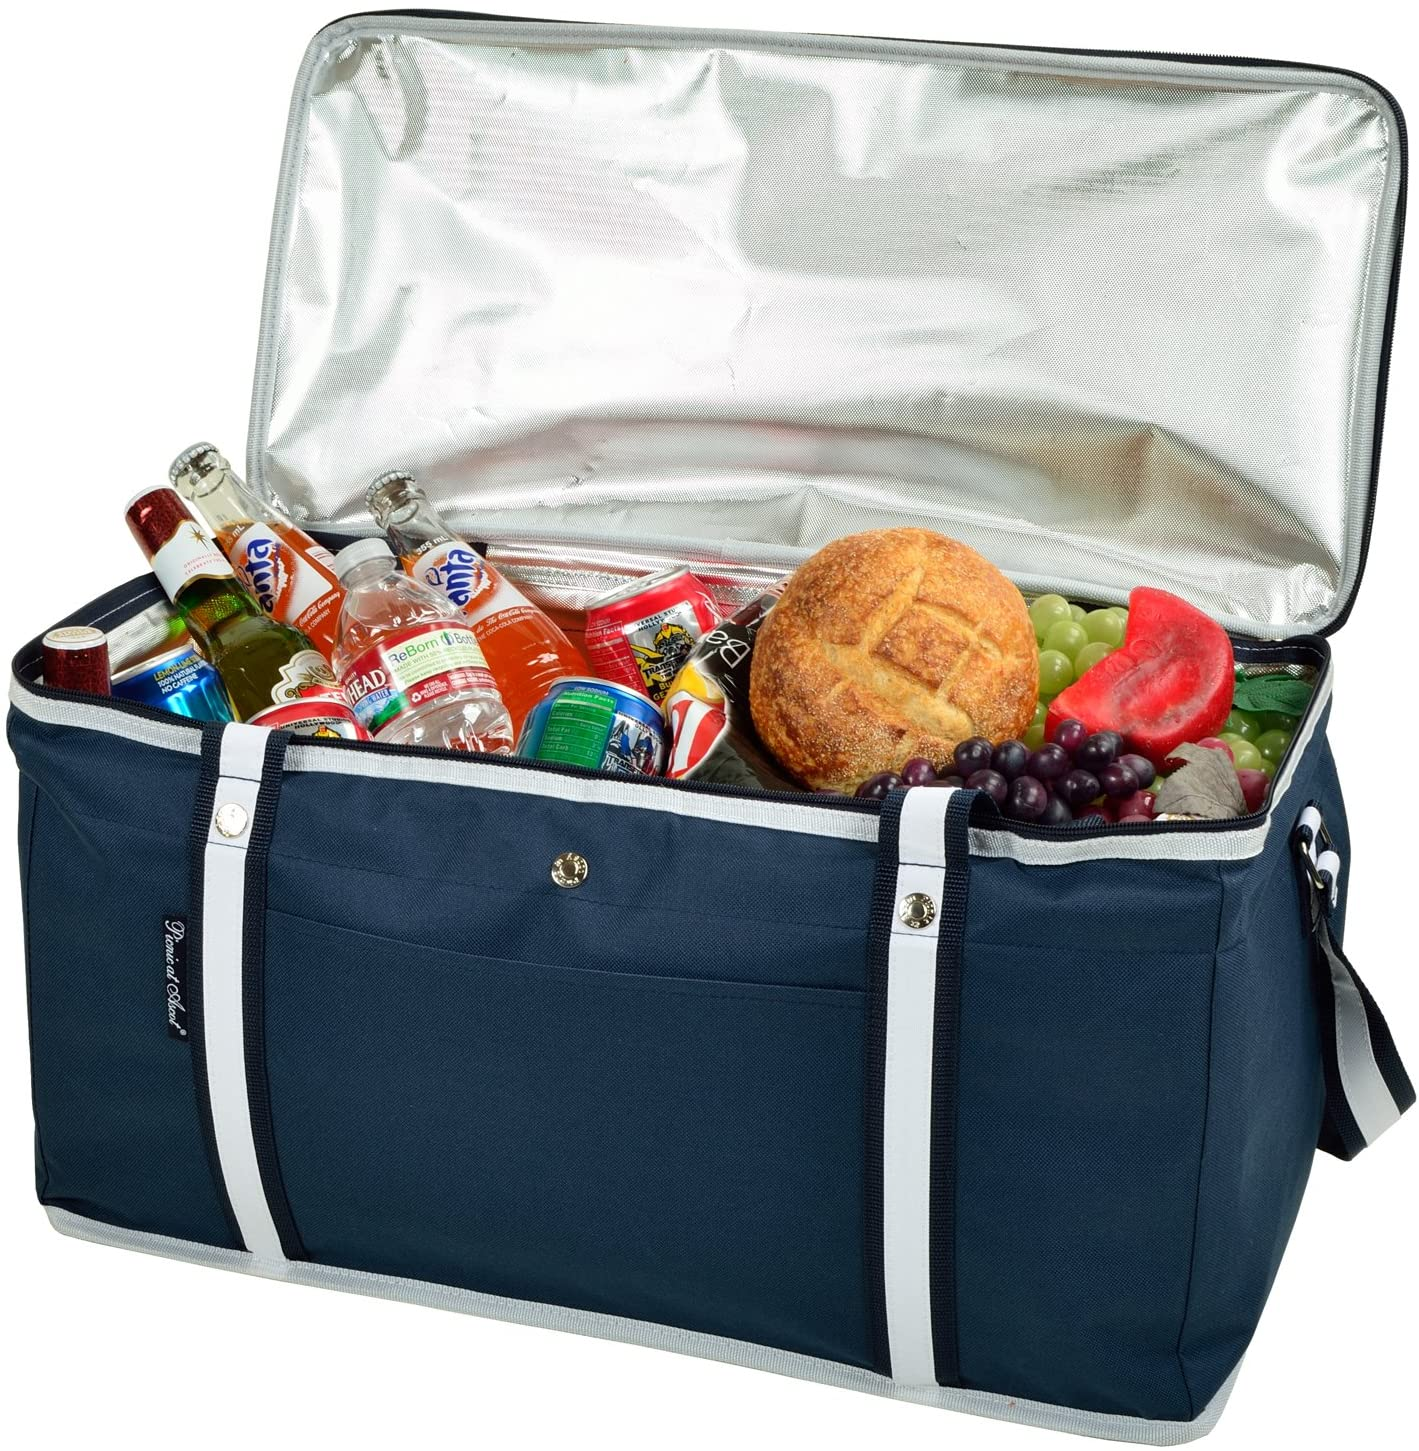 food and drinks inside a portable insulated beach cooler